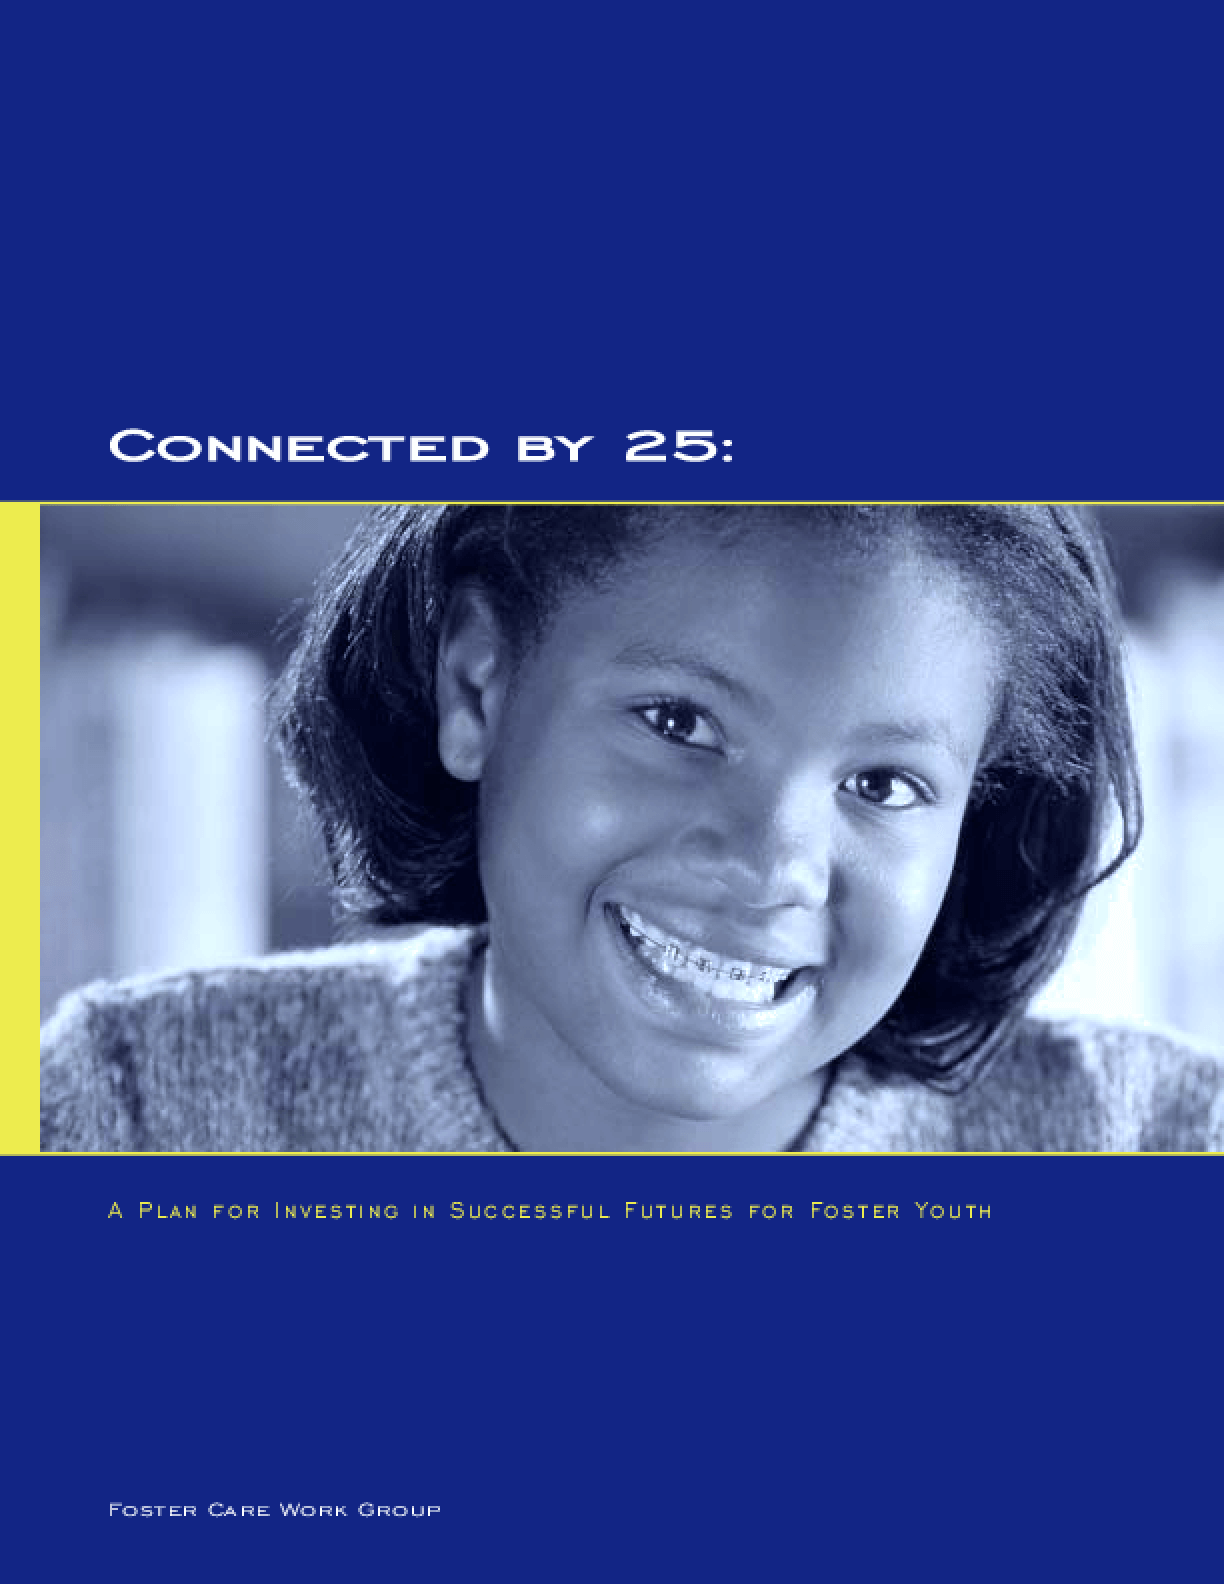 Connected by 25: A Plan for Investing in Successful Futures for Foster Youth